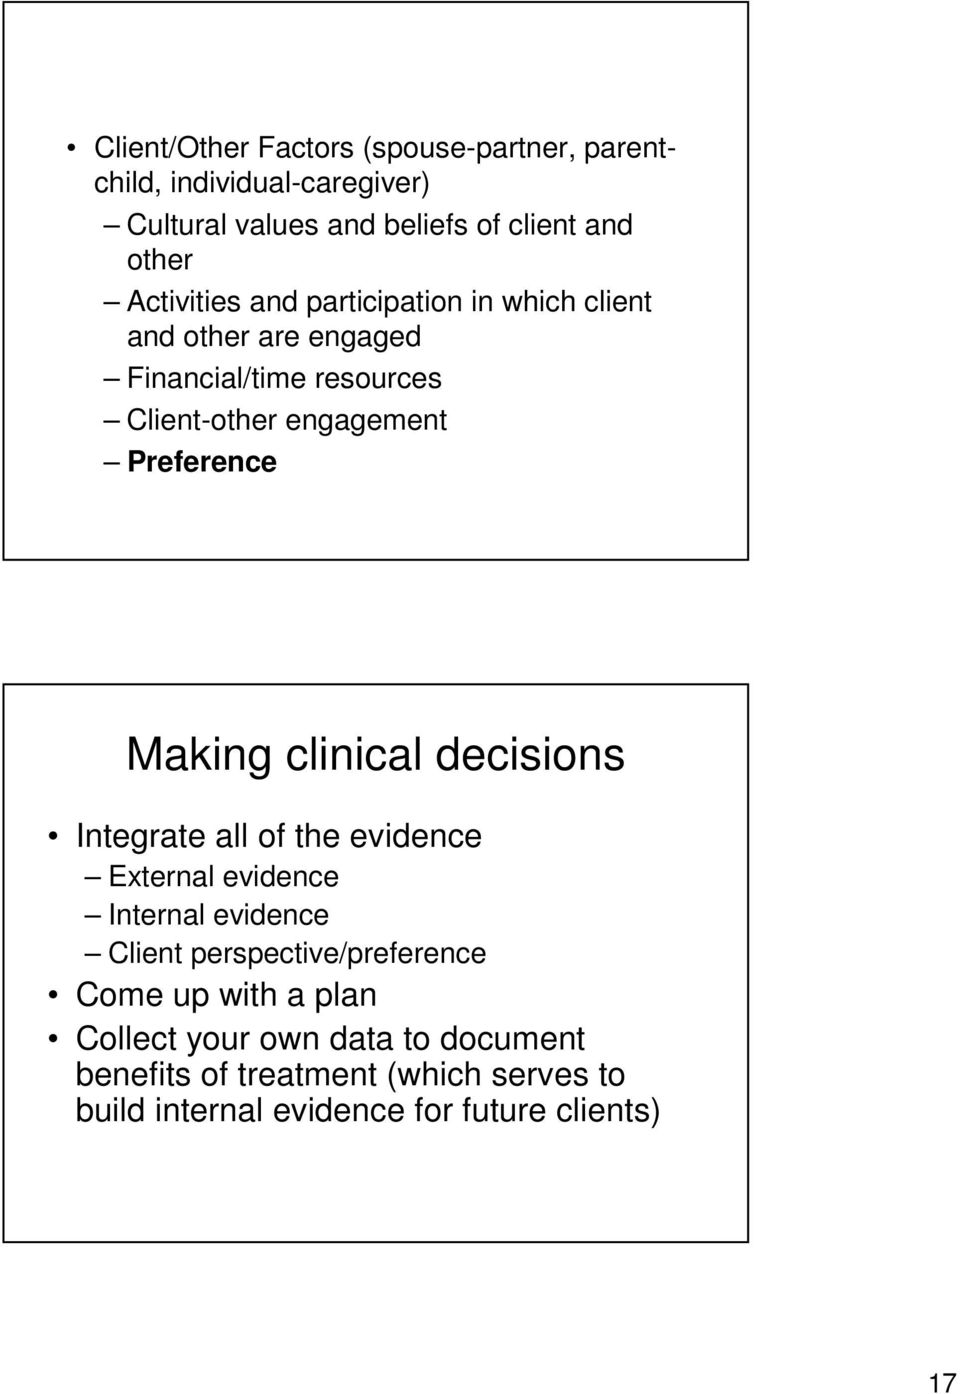 Making clinical decisions Integrate all of the evidence External evidence Internal evidence Client perspective/preference Come